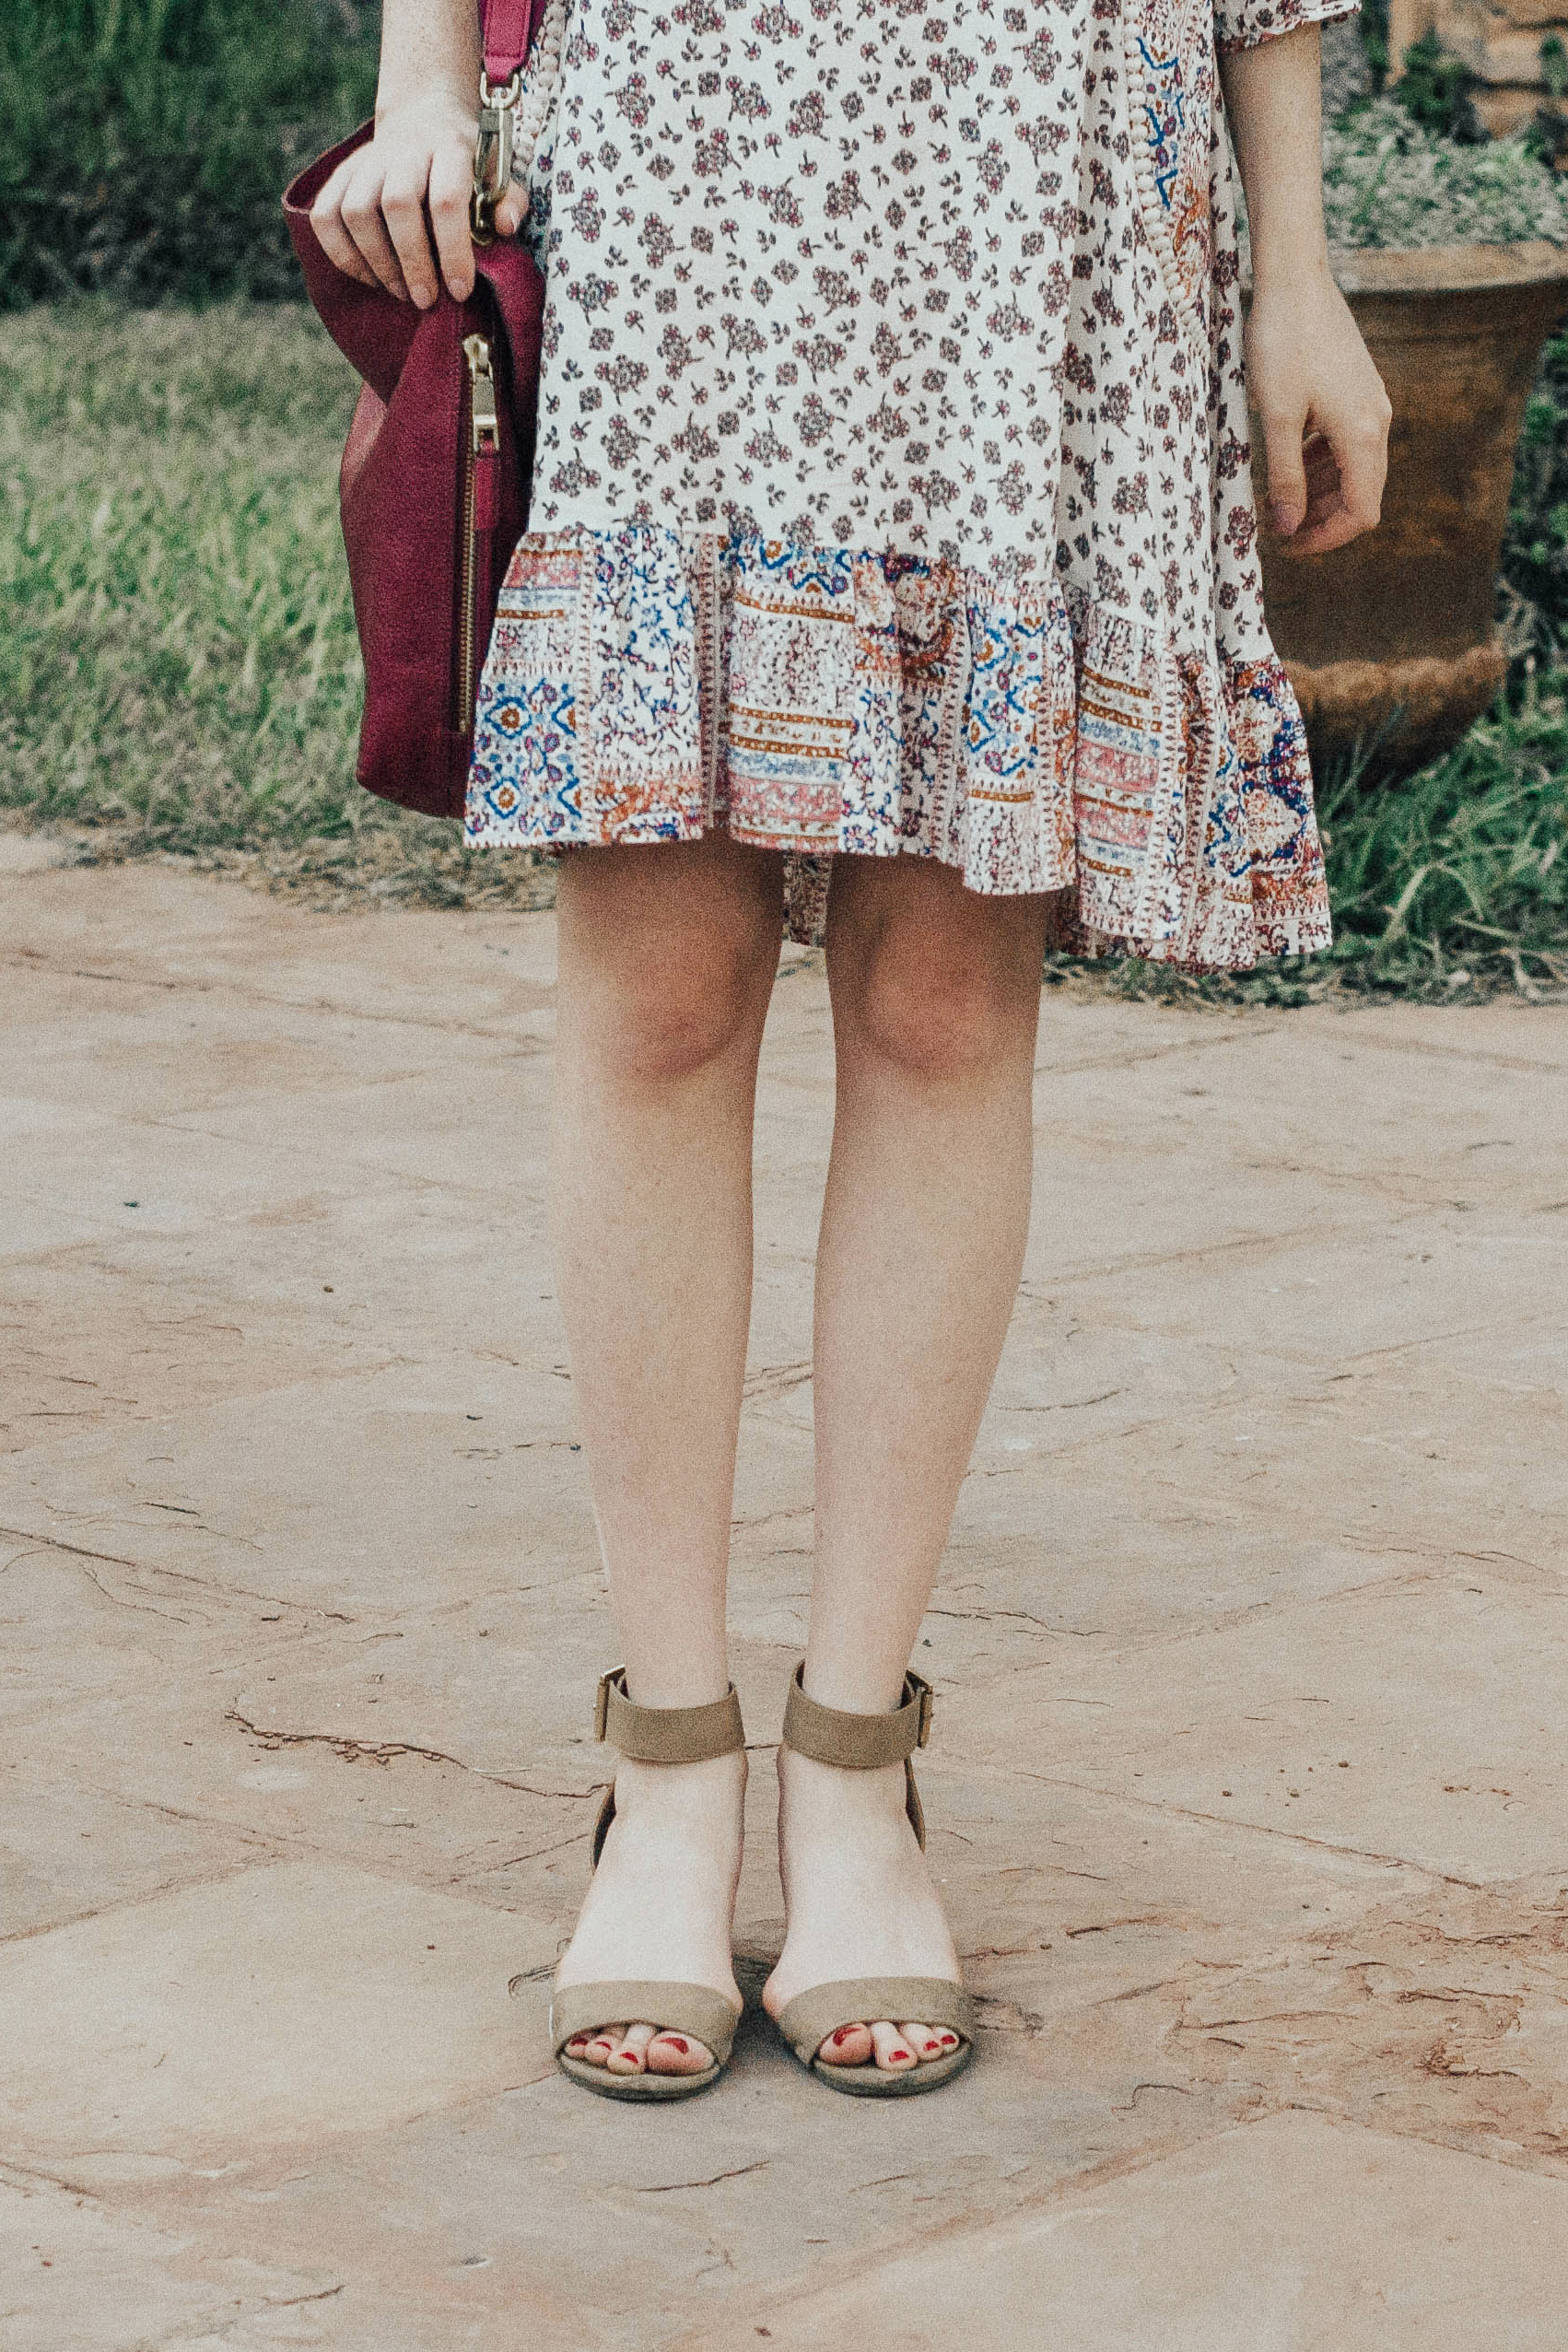 Boho Patterned Dress (via Chic Now)